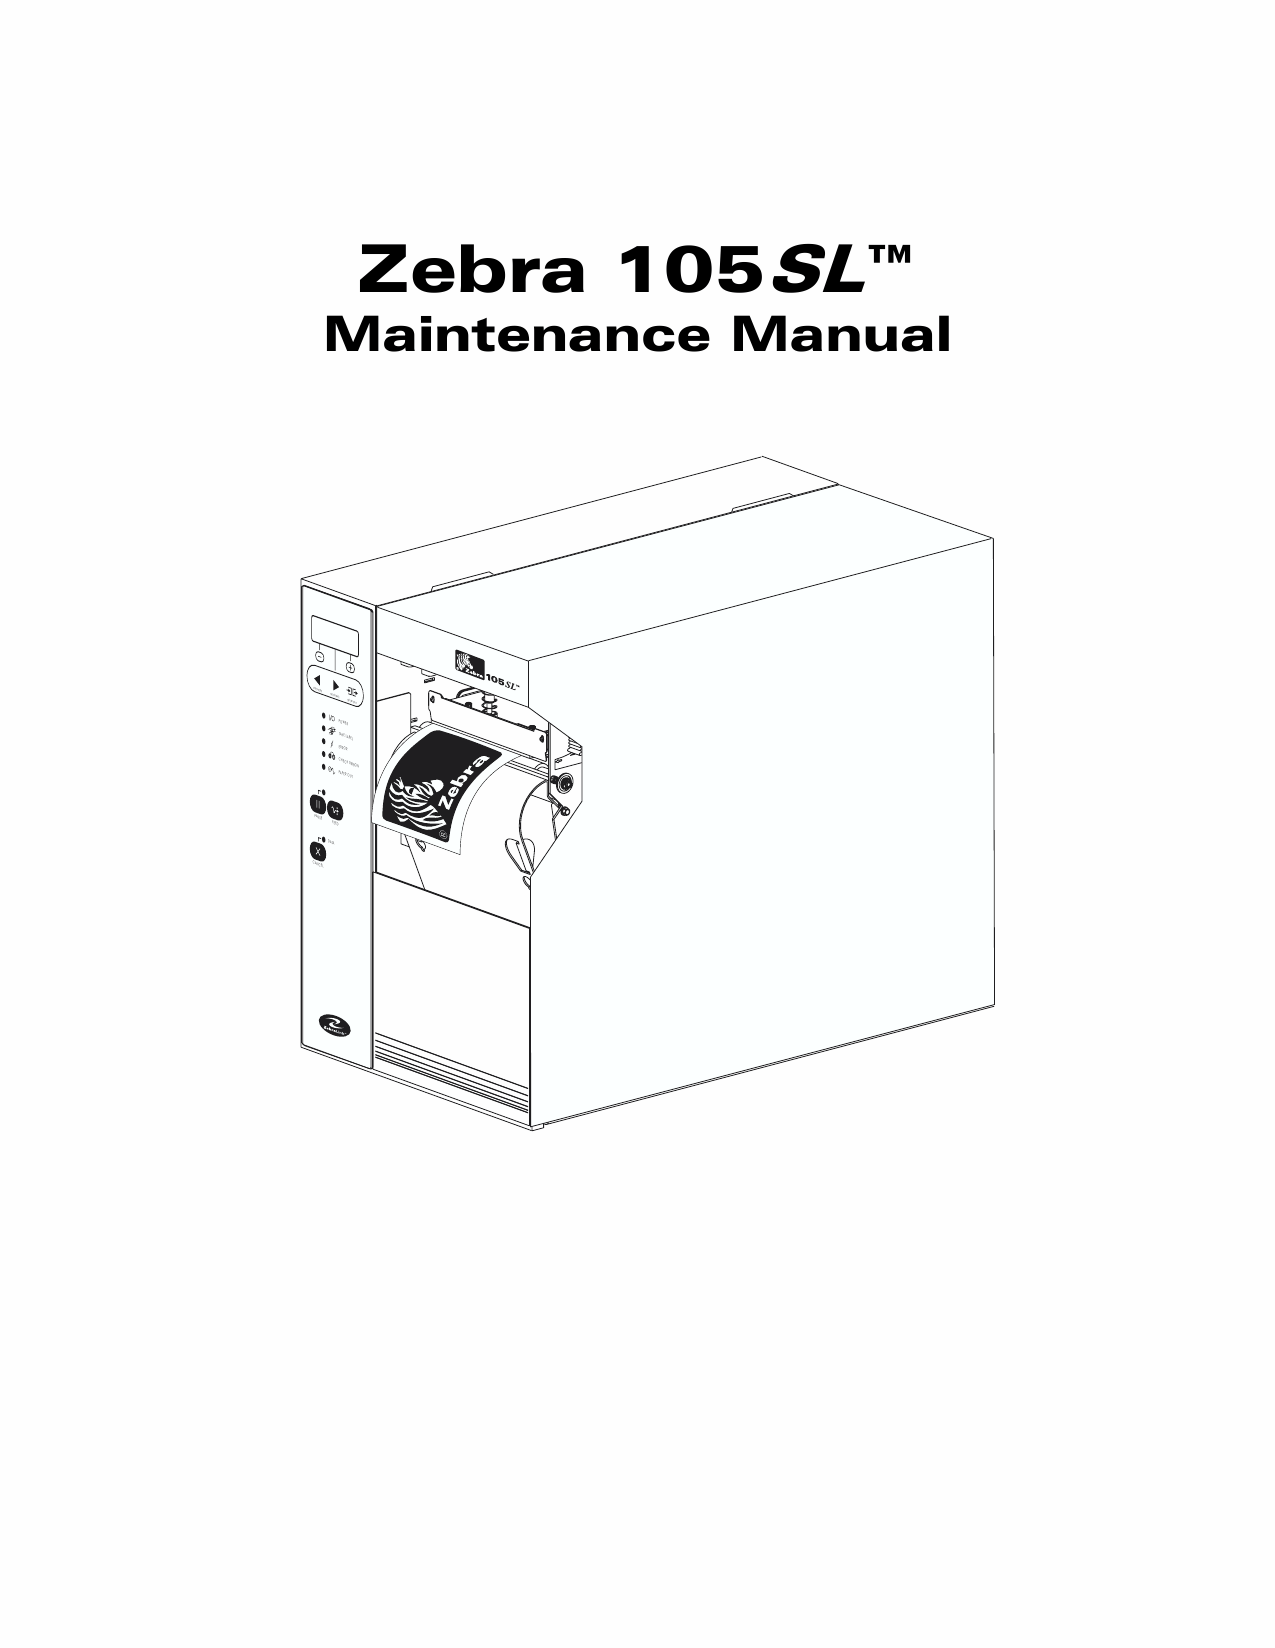 Zebra Label 105SL Maintenance Service Manual